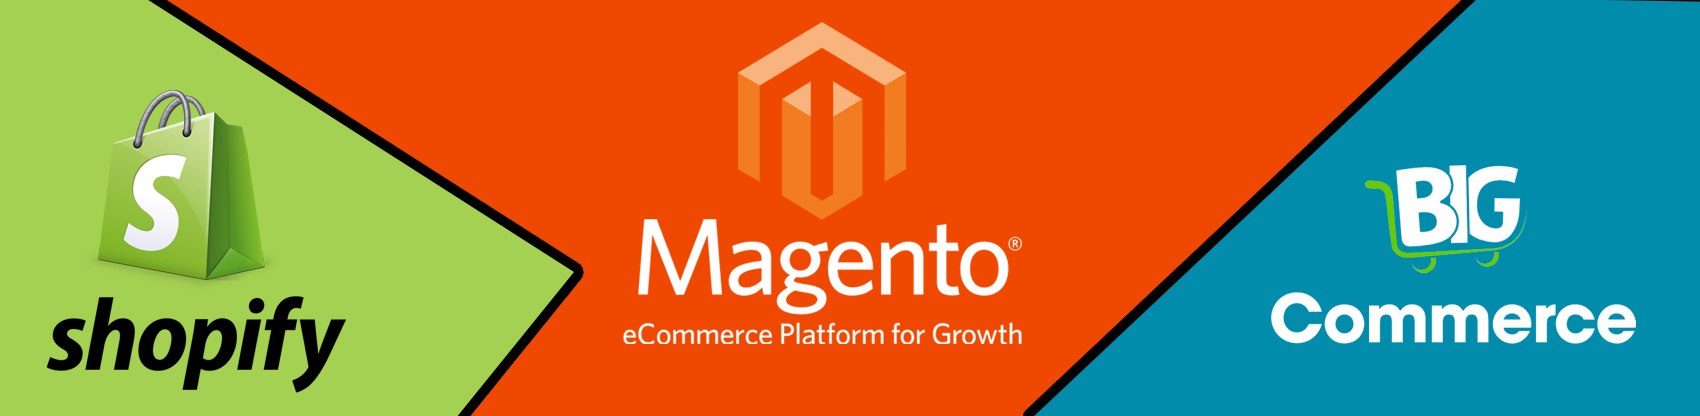 Magento Vs Shopify Vs BigCommerce – Which is the best E-Commerce platform for you?